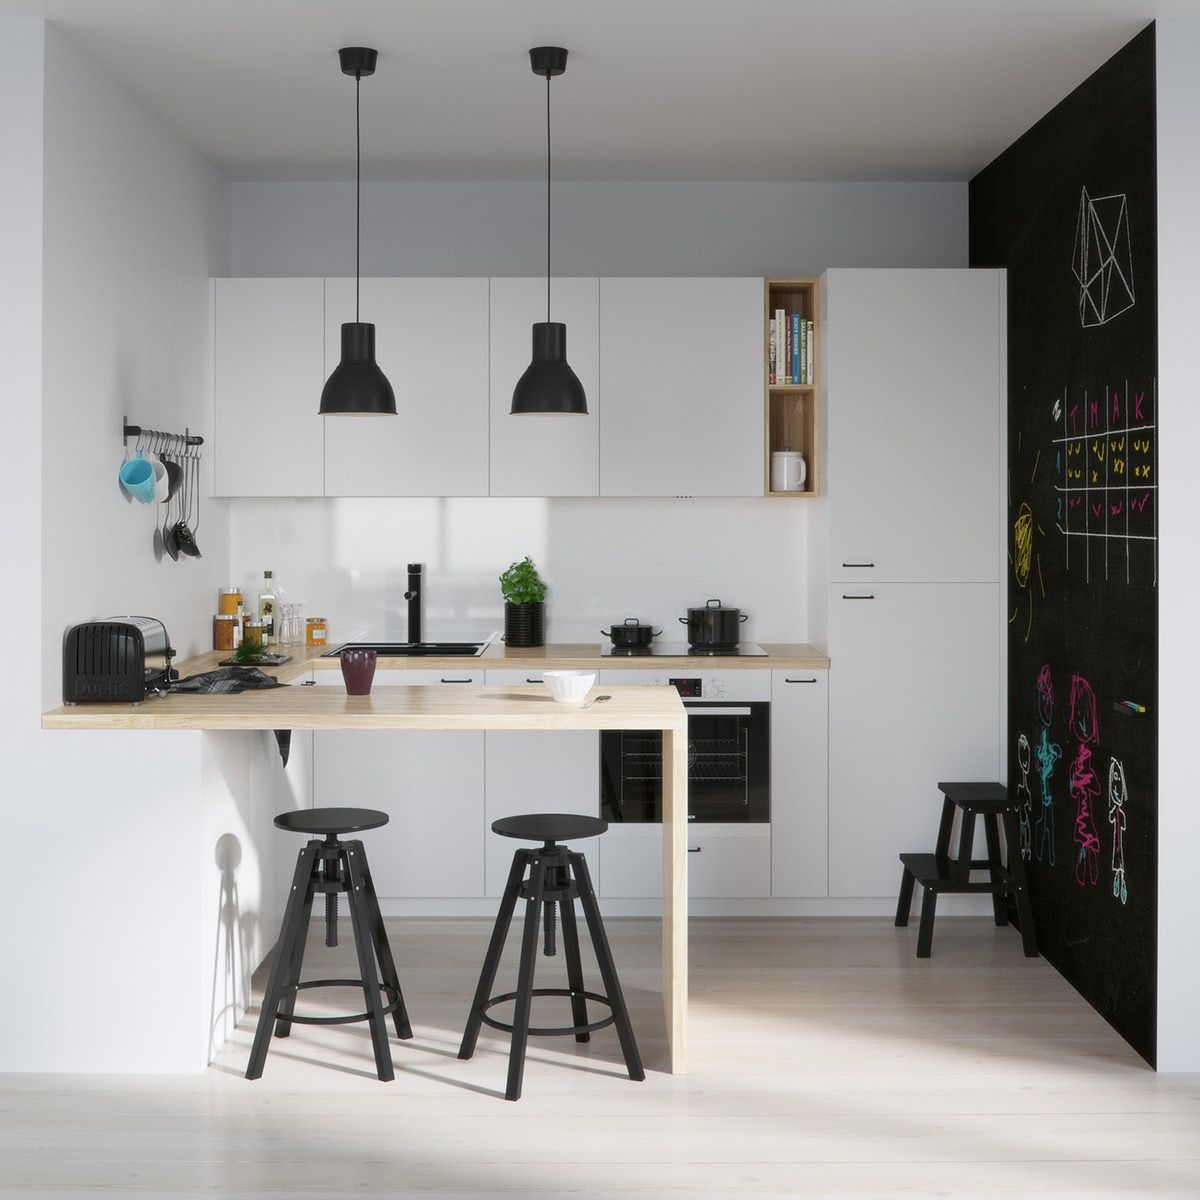 25 Best Small Kitchen Ideas And Designs For 2017  Kitchens Woods Amazing Small Kitchen And Dining Design Design Ideas